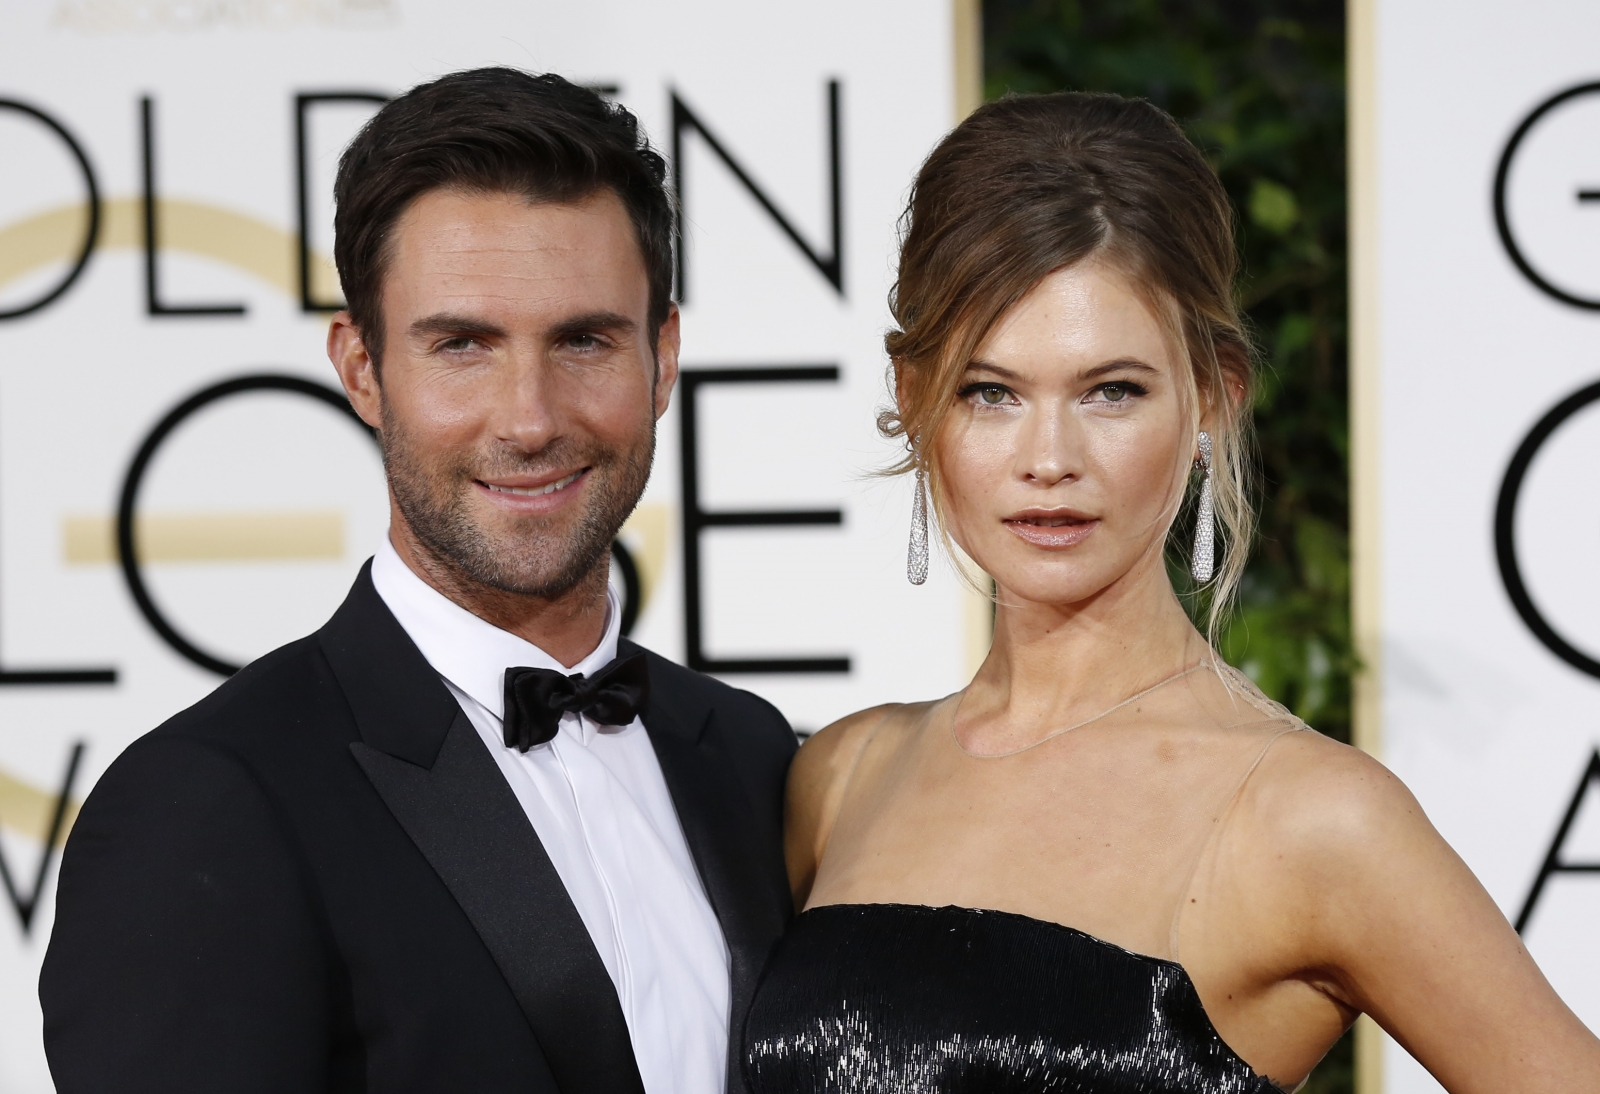 Adam Levine And Behati Prinsloo Welcome Their Baby Girl Into The World